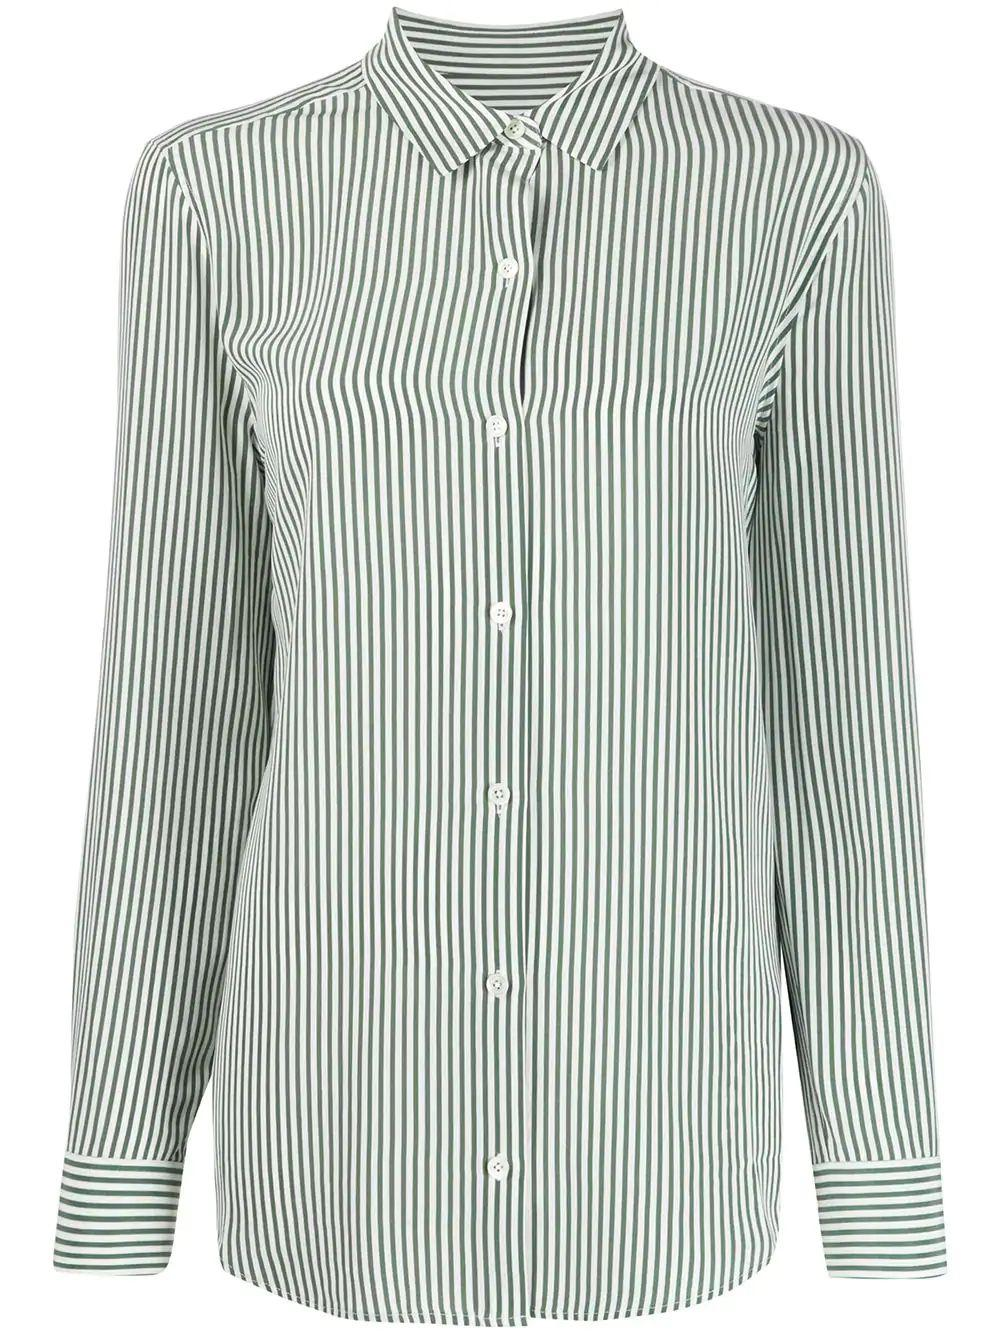 Essential Stripe Button Down